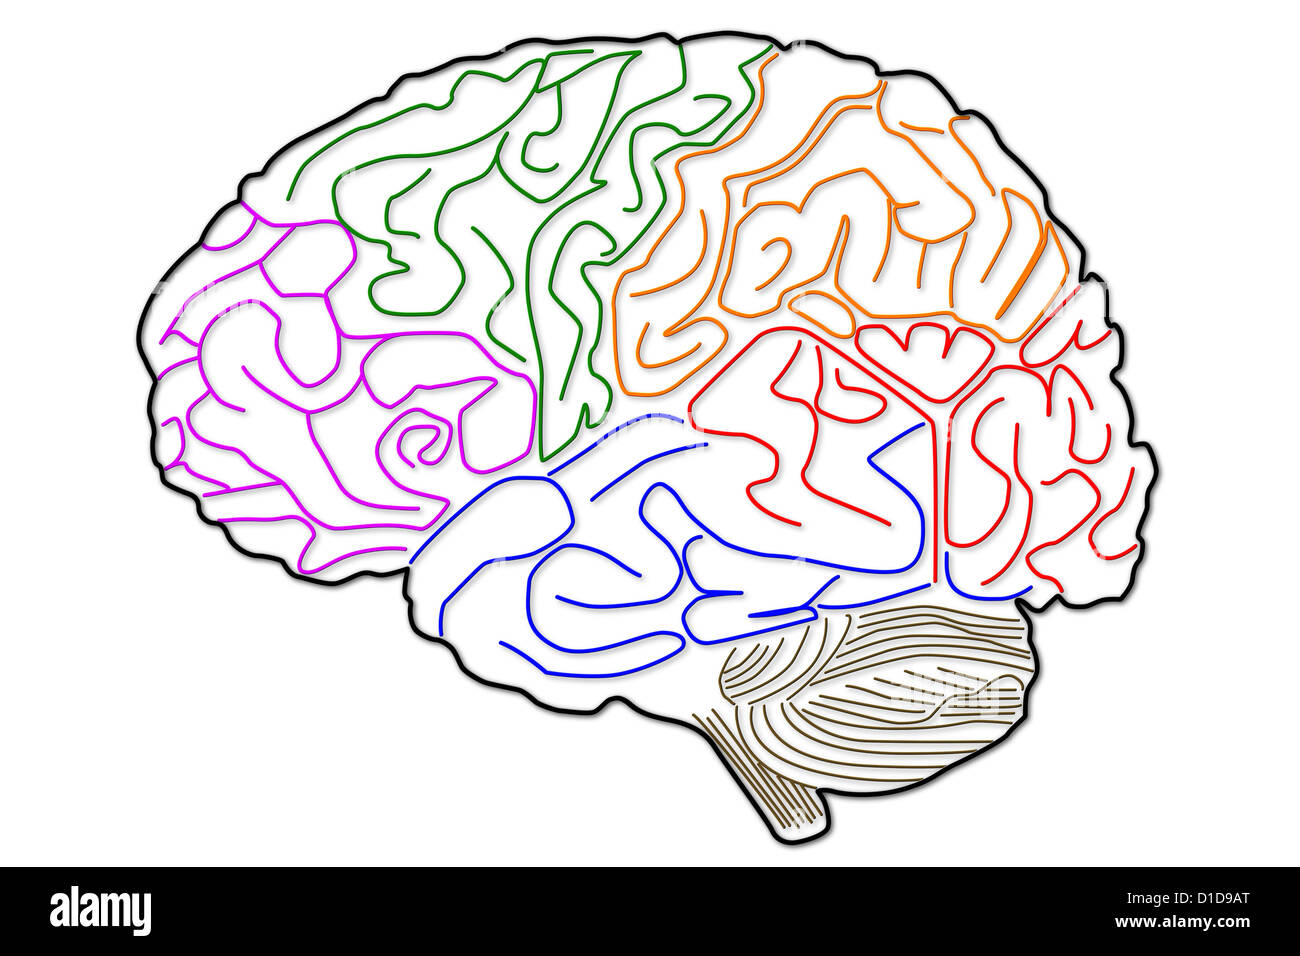 The Human Brain Structure Stock Photo 52538496 Alamy